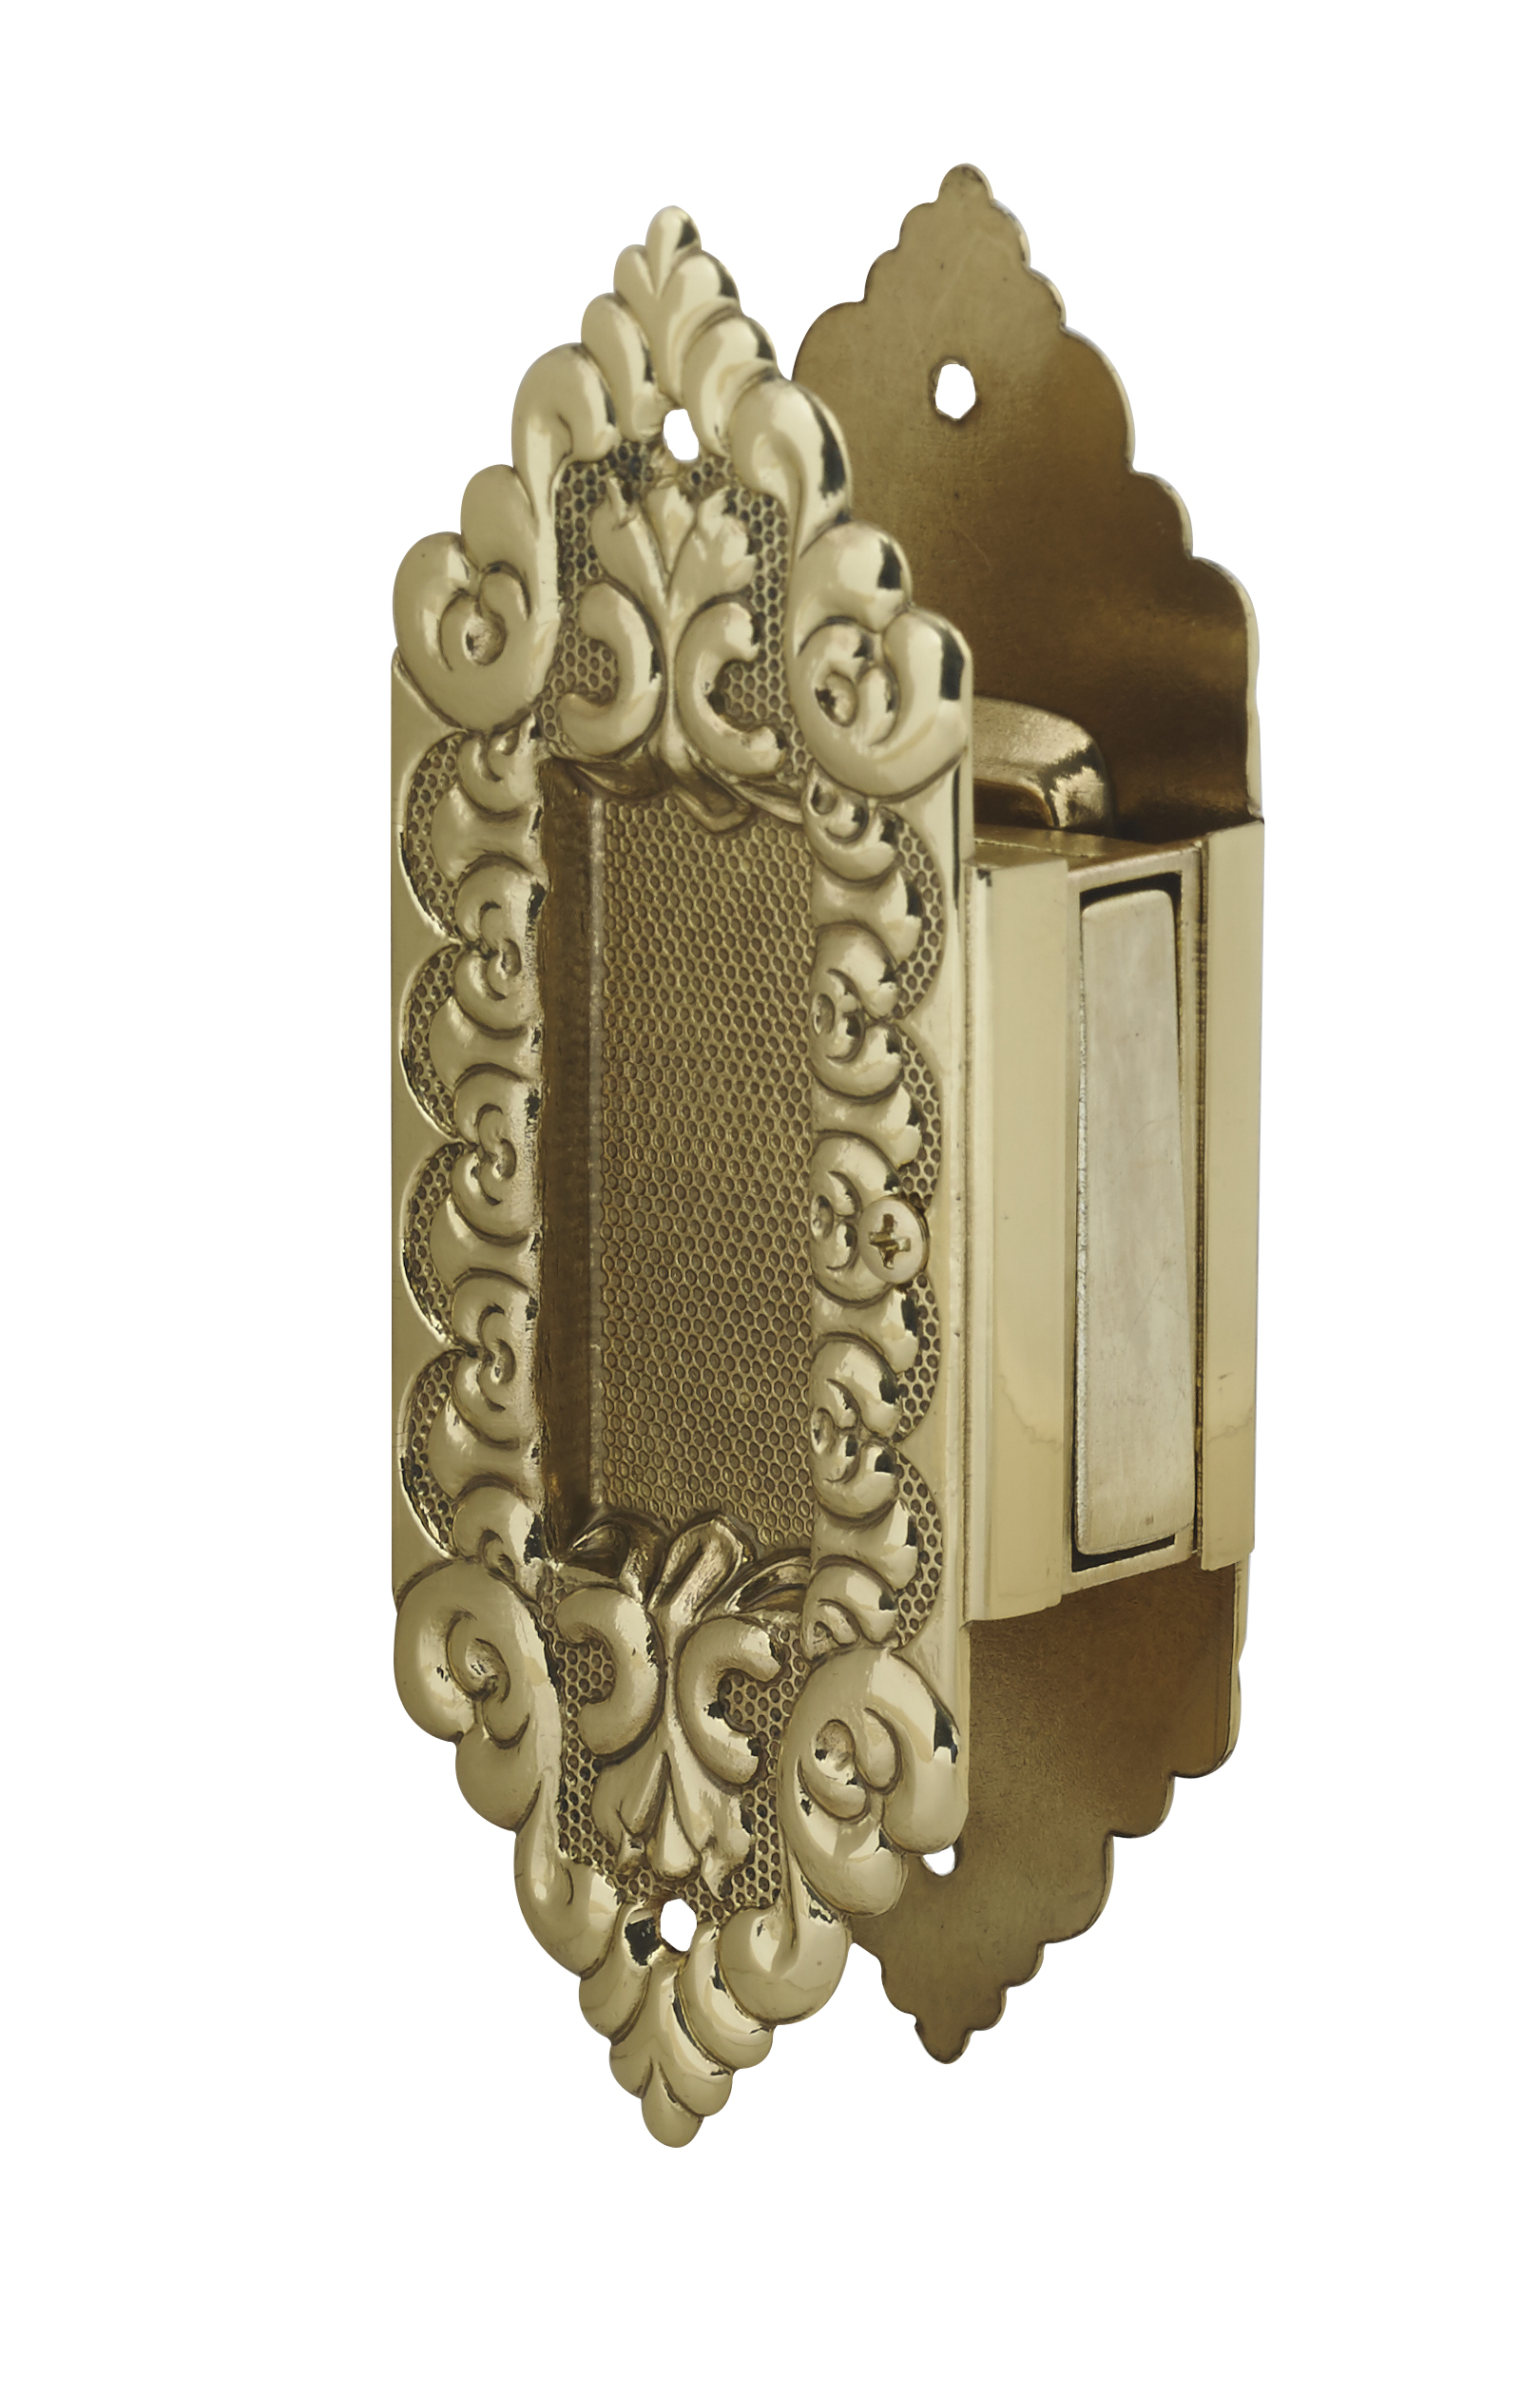 DARBY 2 POCKET DOOR PULL SOLID DECORATIVE BRASS POCKET TRIM SET PASSAGE MORTISE Embellished